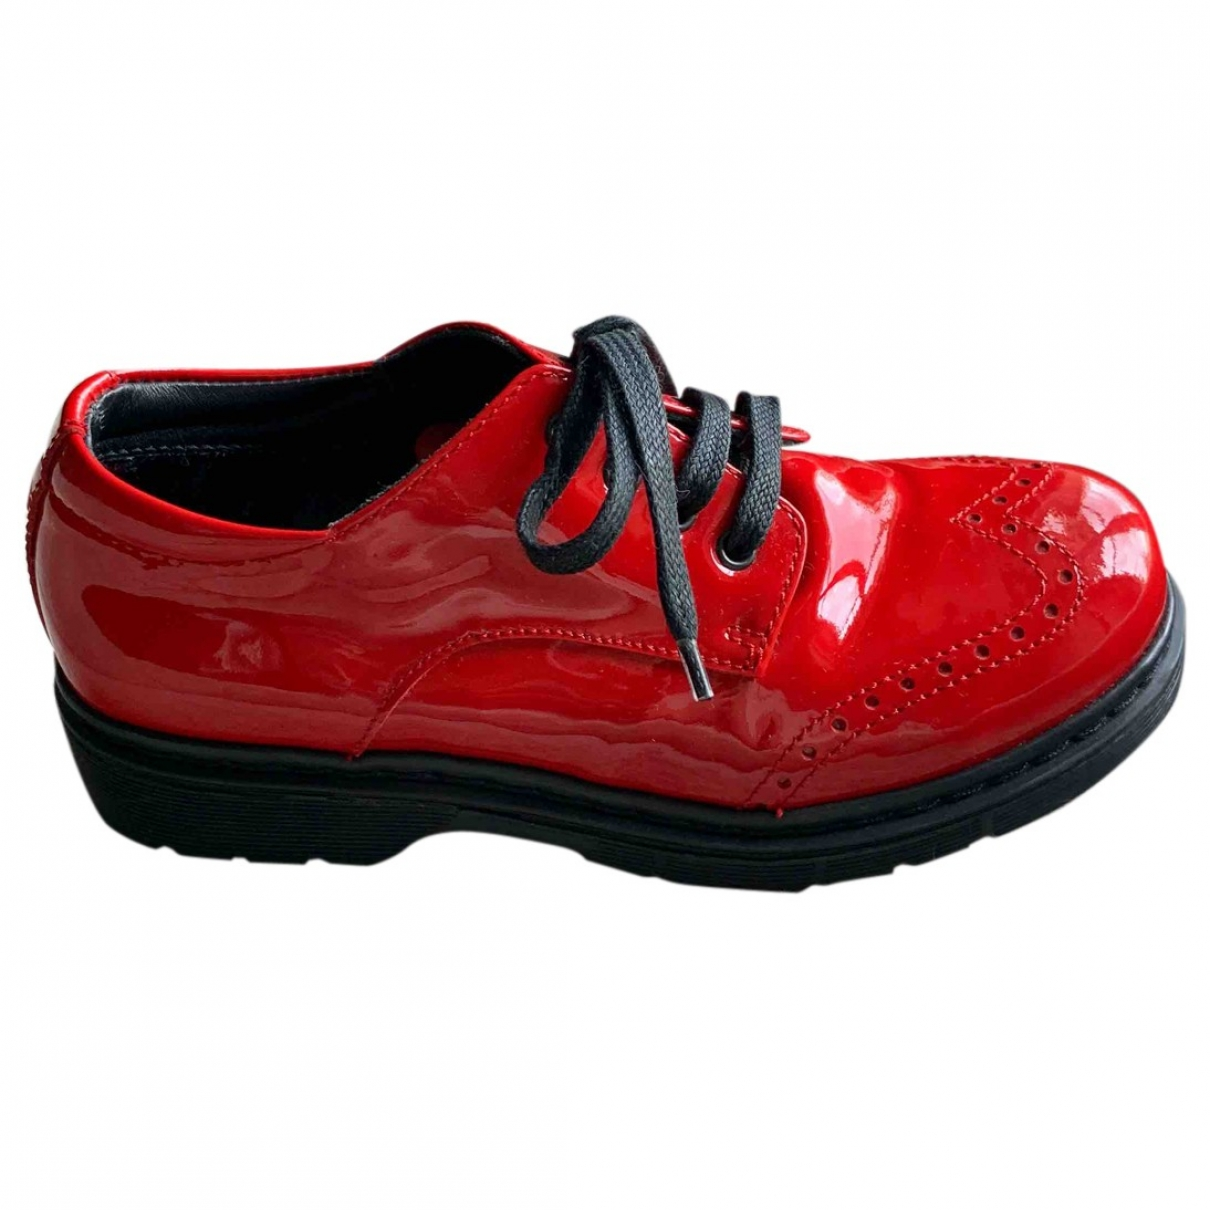 Dolce & Gabbana \N Red Leather Lace up boots for Kids 31 EU